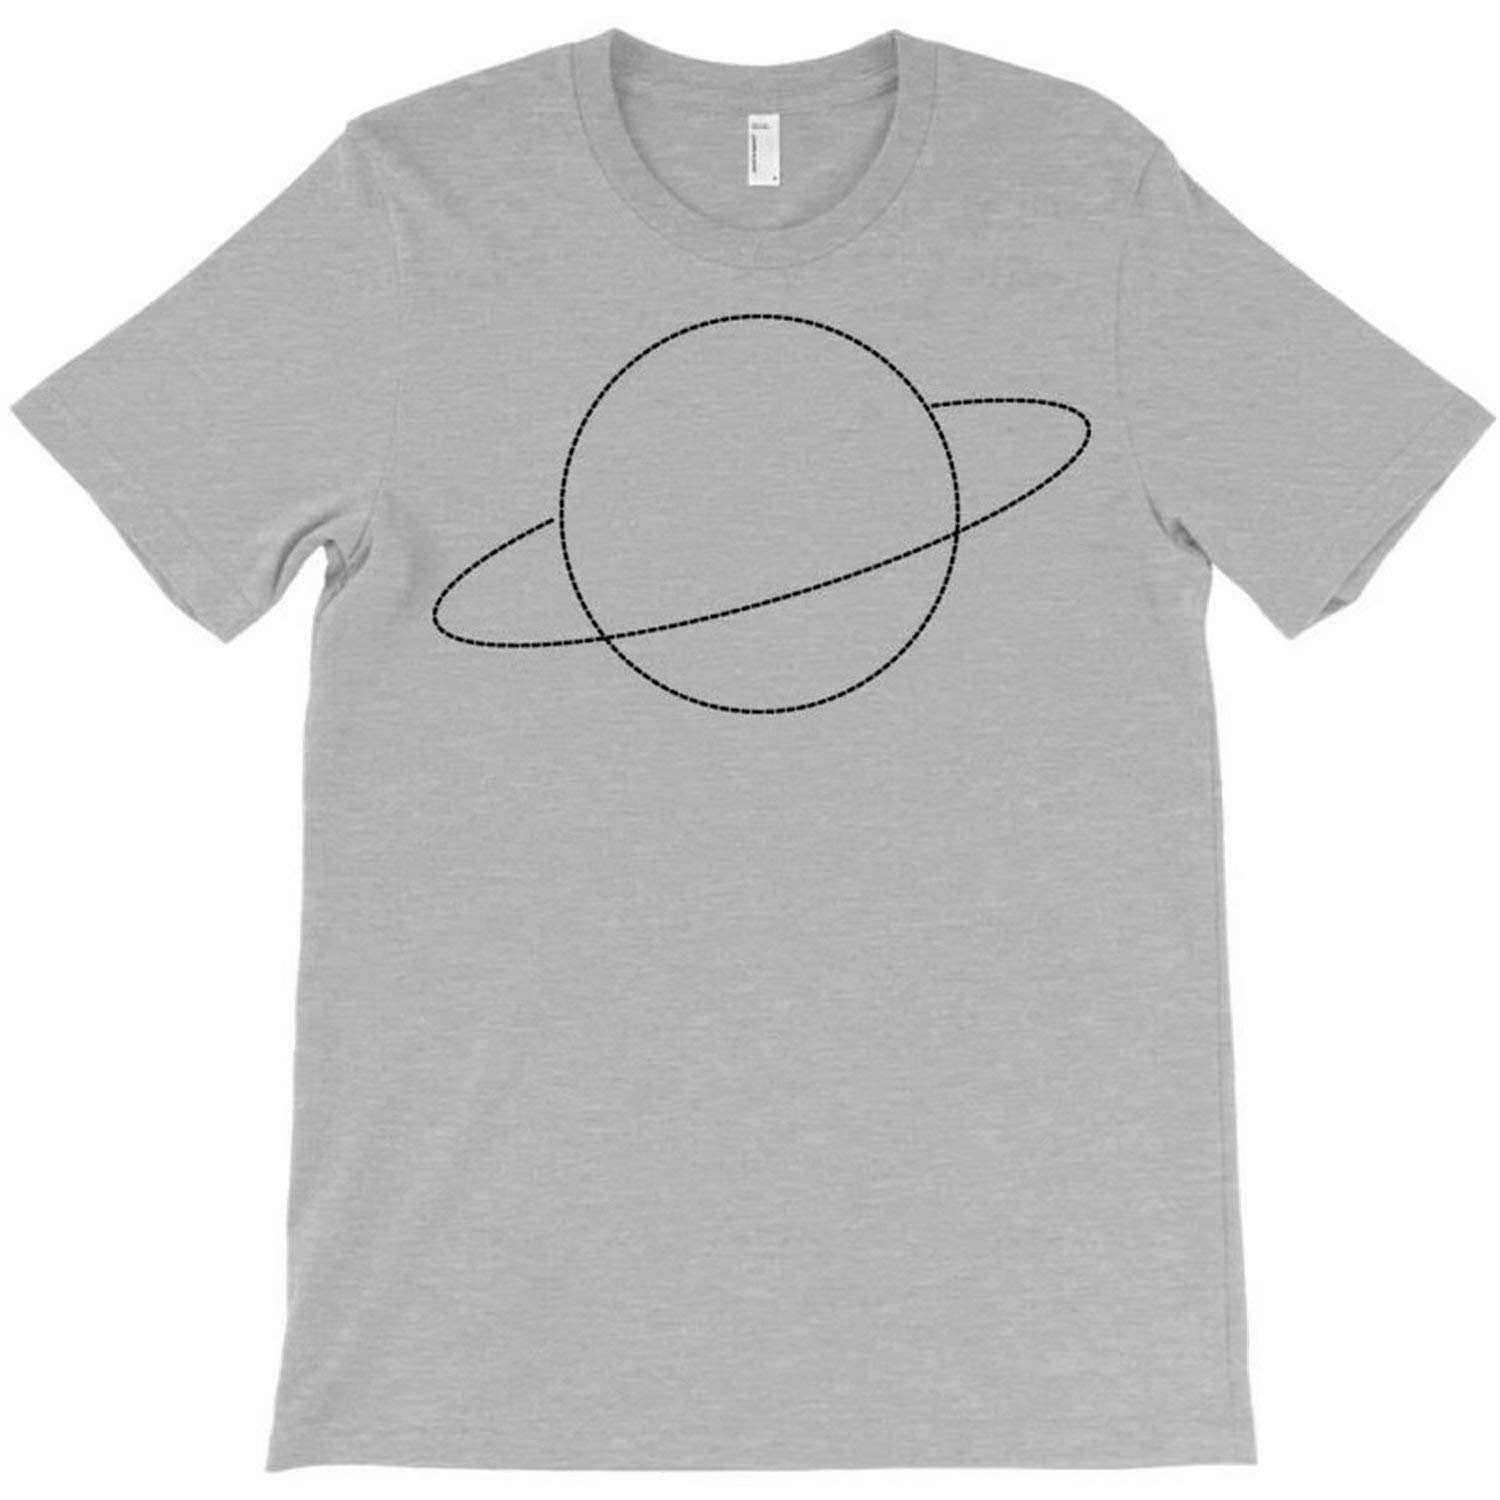 Unisex Baby Casual Shirt Minimal Cute Planet T-Shirt